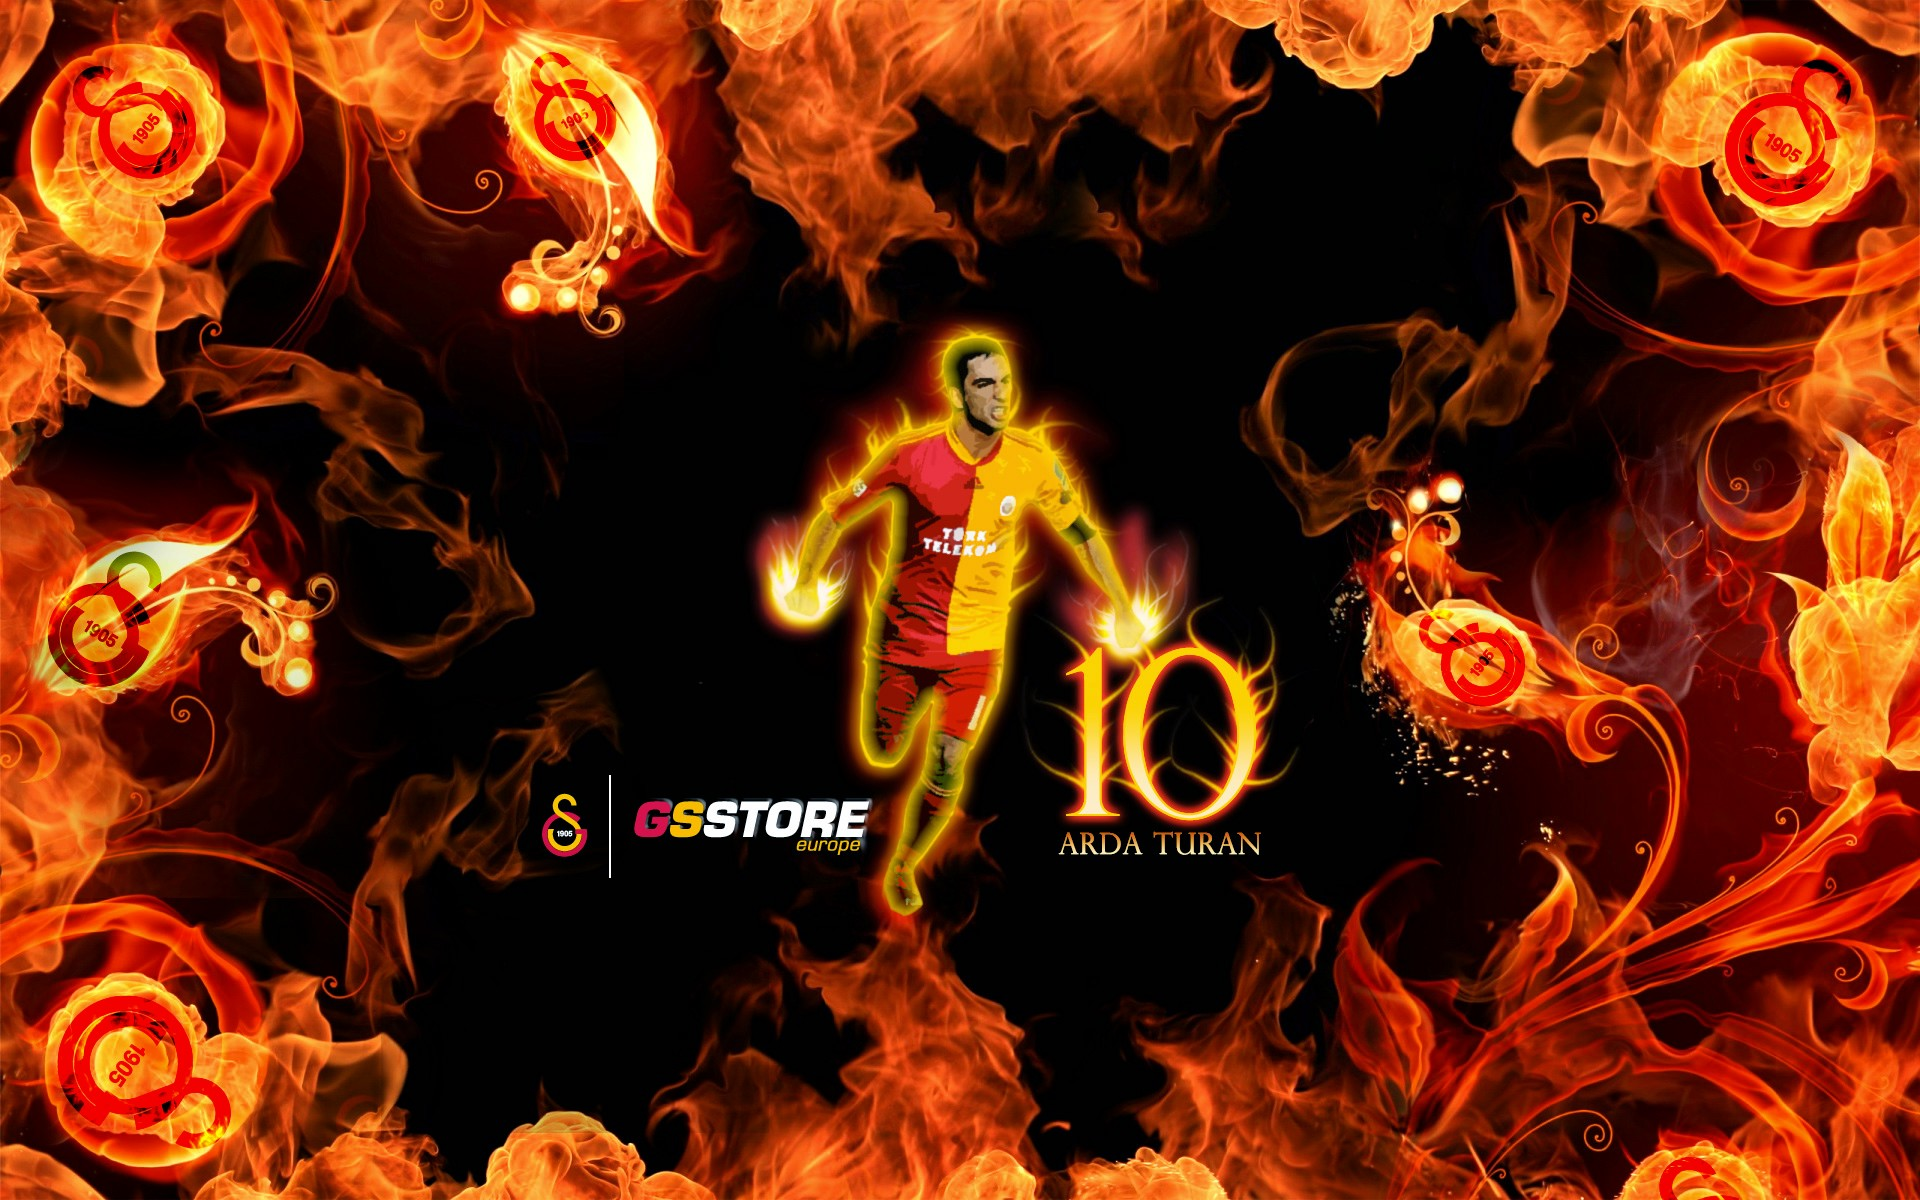 Download Galatasaray Wallpapers in HD For Desktop or Gadget 1920x1200